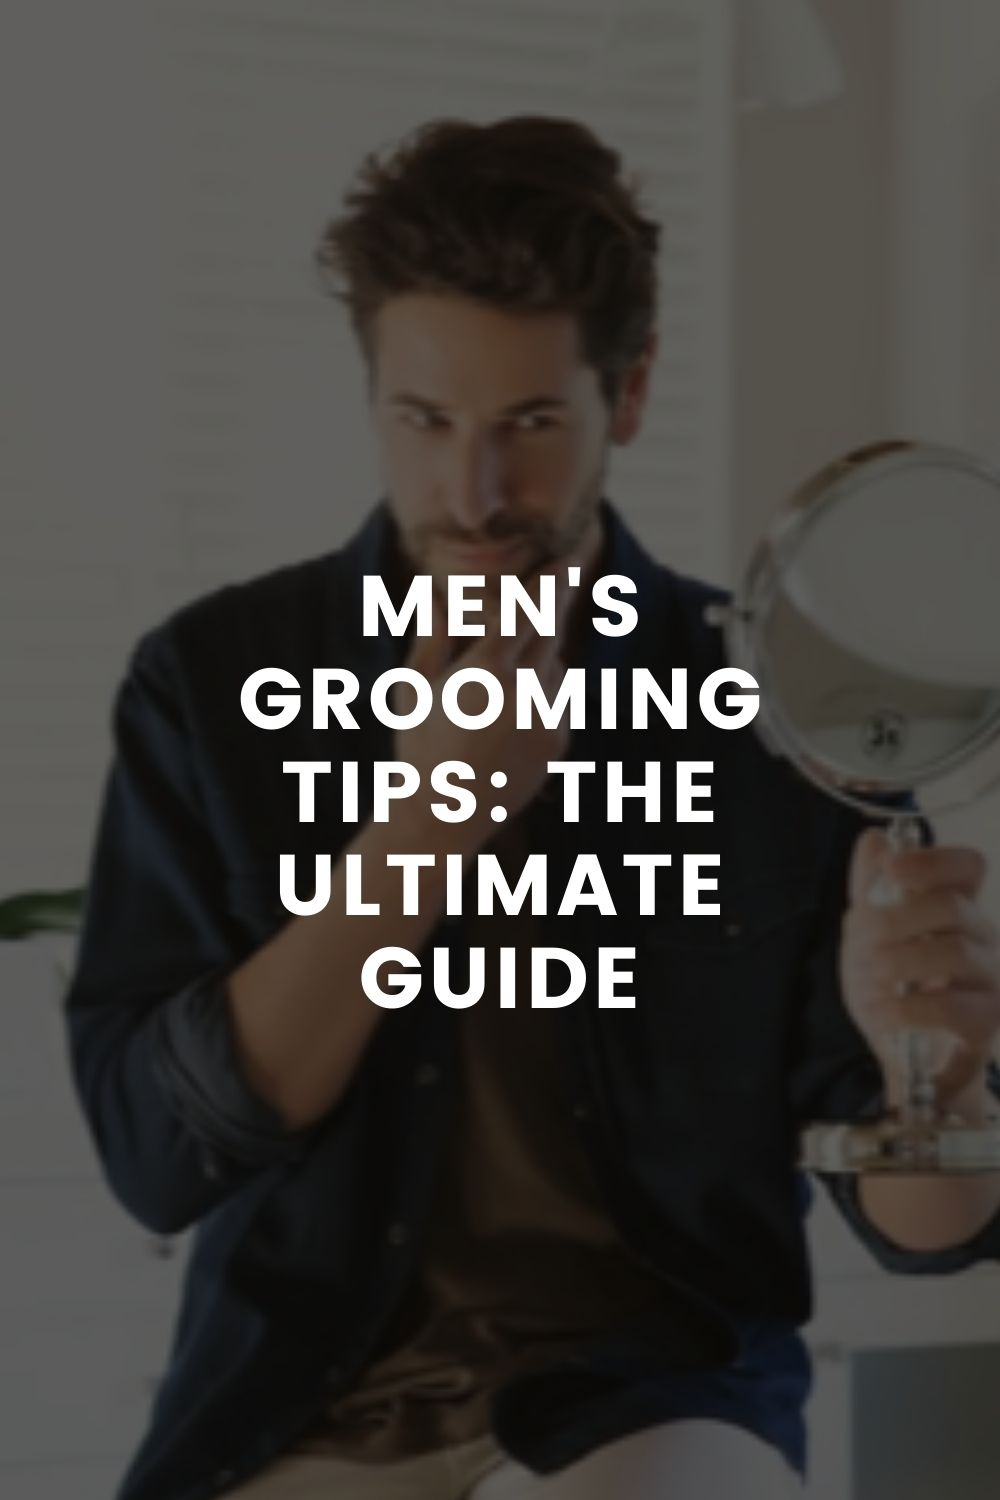 Men's grooming tips: The Ultimate Guide